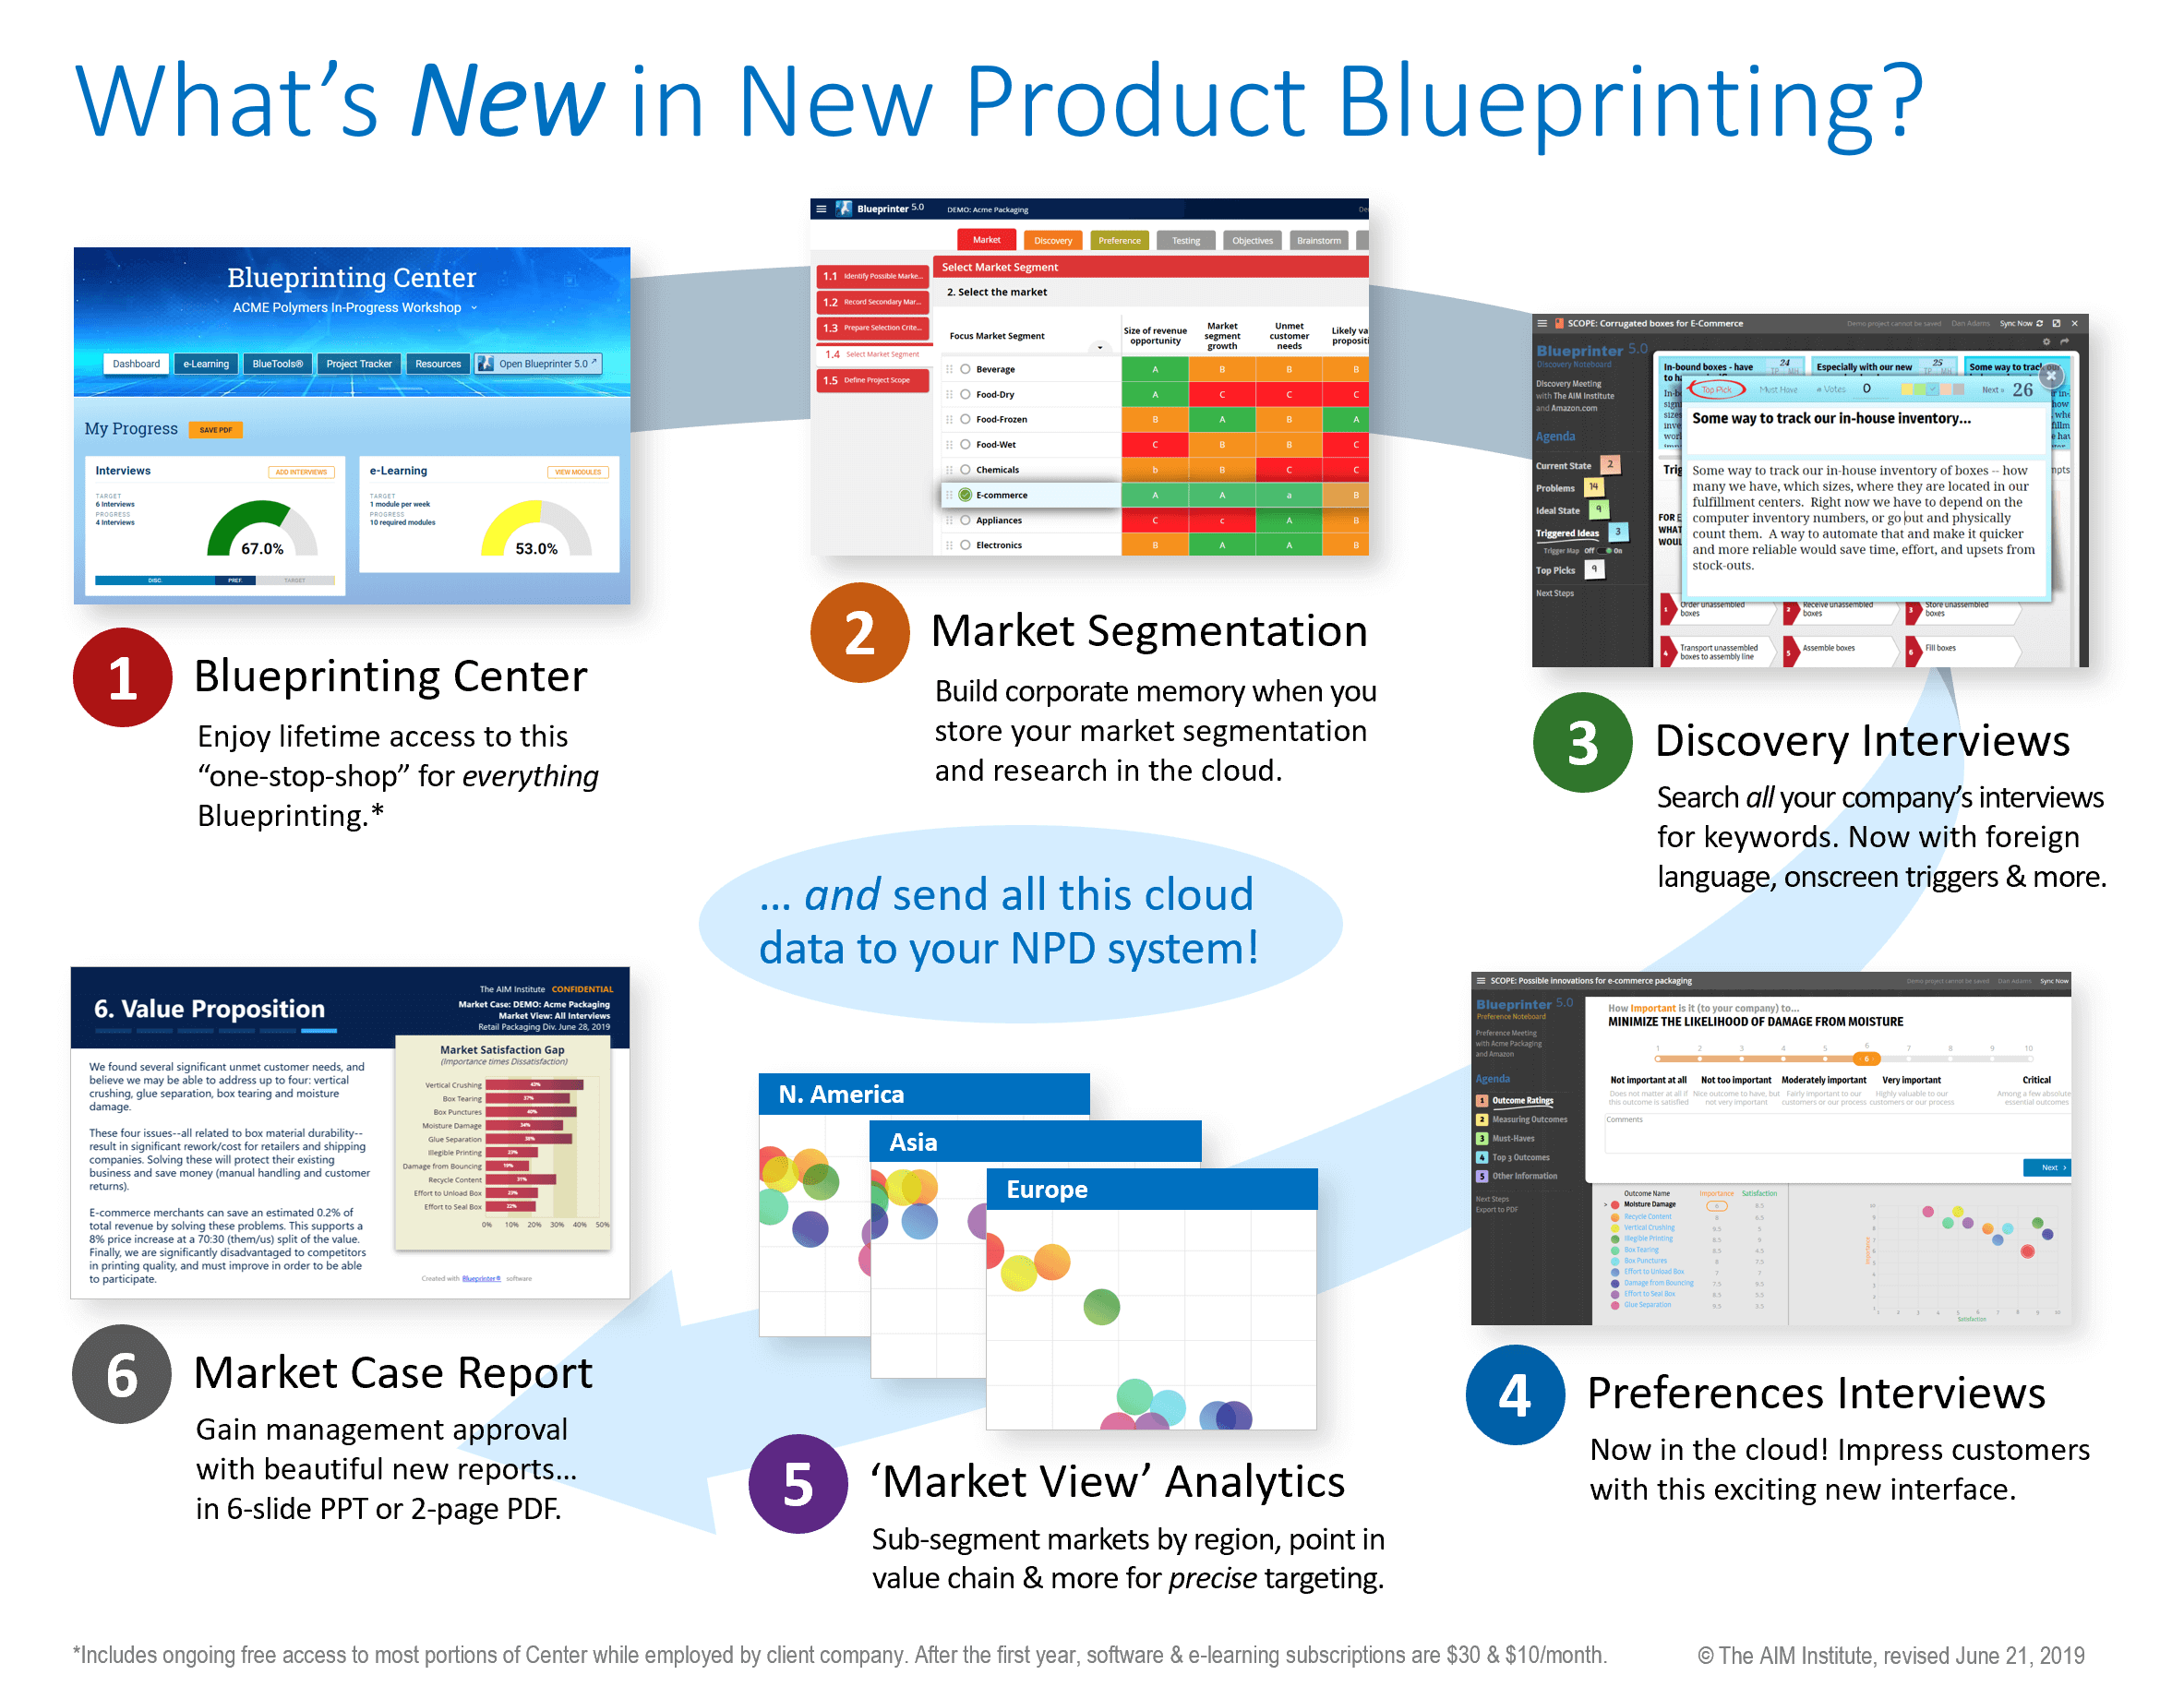 Whats New in New Product Blueprinting 2019